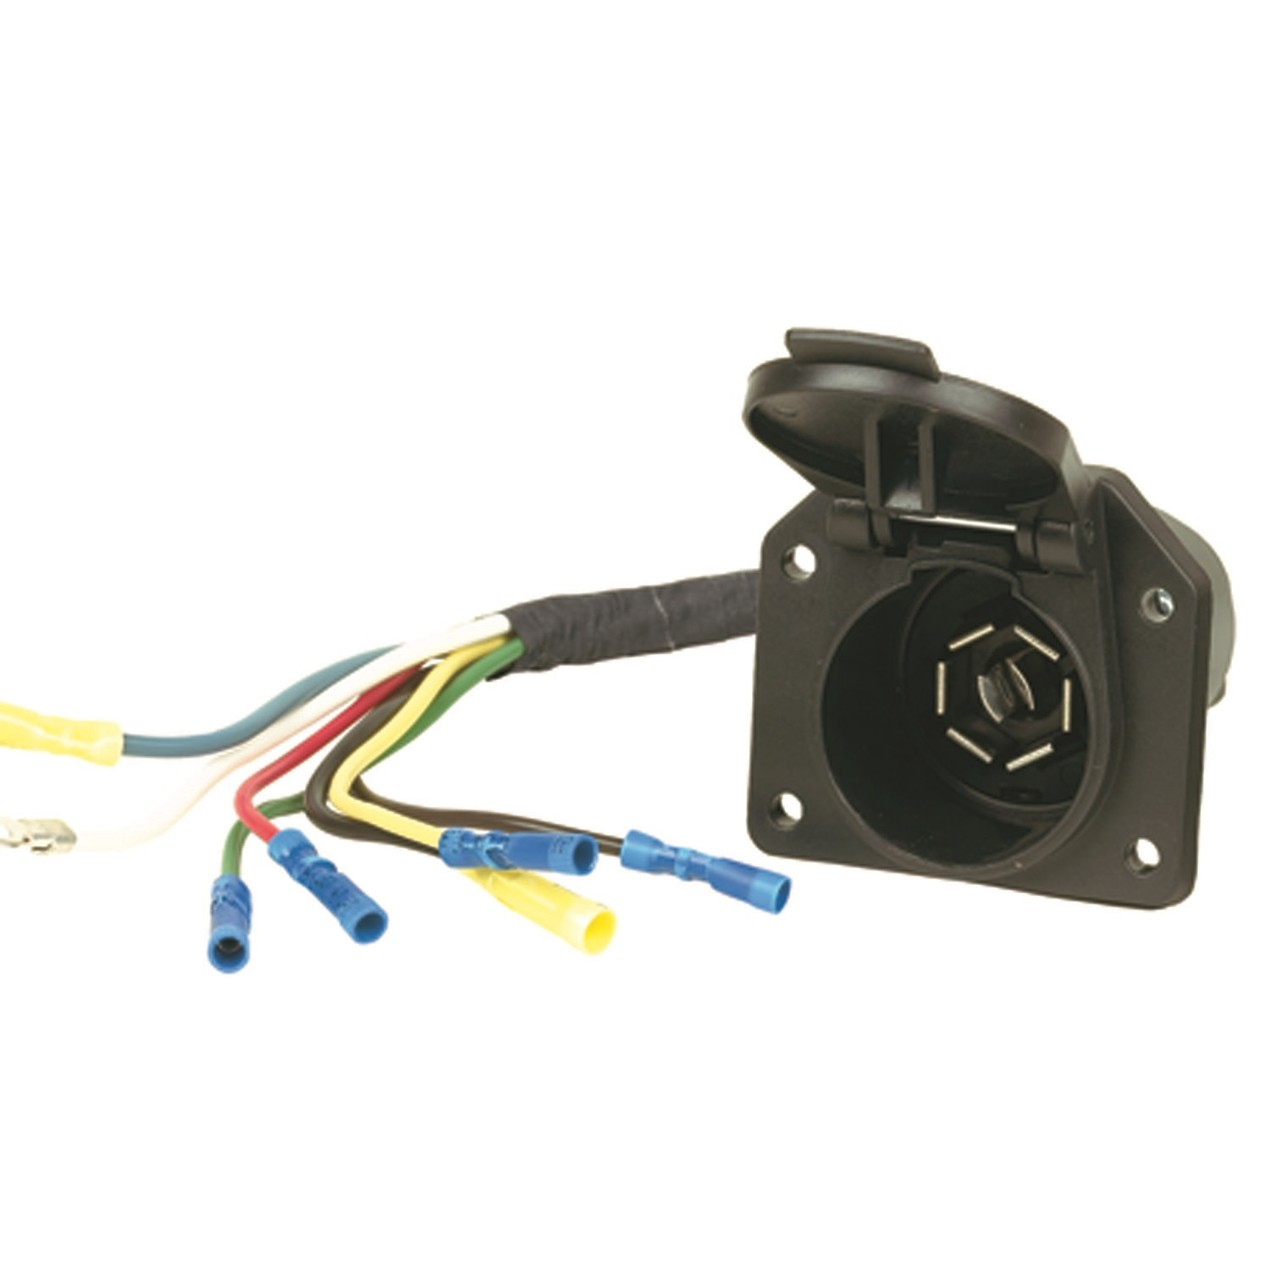 Hopkins Towing Solution 41145 7 Blade Vehicle To Trailer ... on trailer plugs, trailer brakes, trailer generator, trailer fuses, trailer hitch harness, trailer mounting brackets,